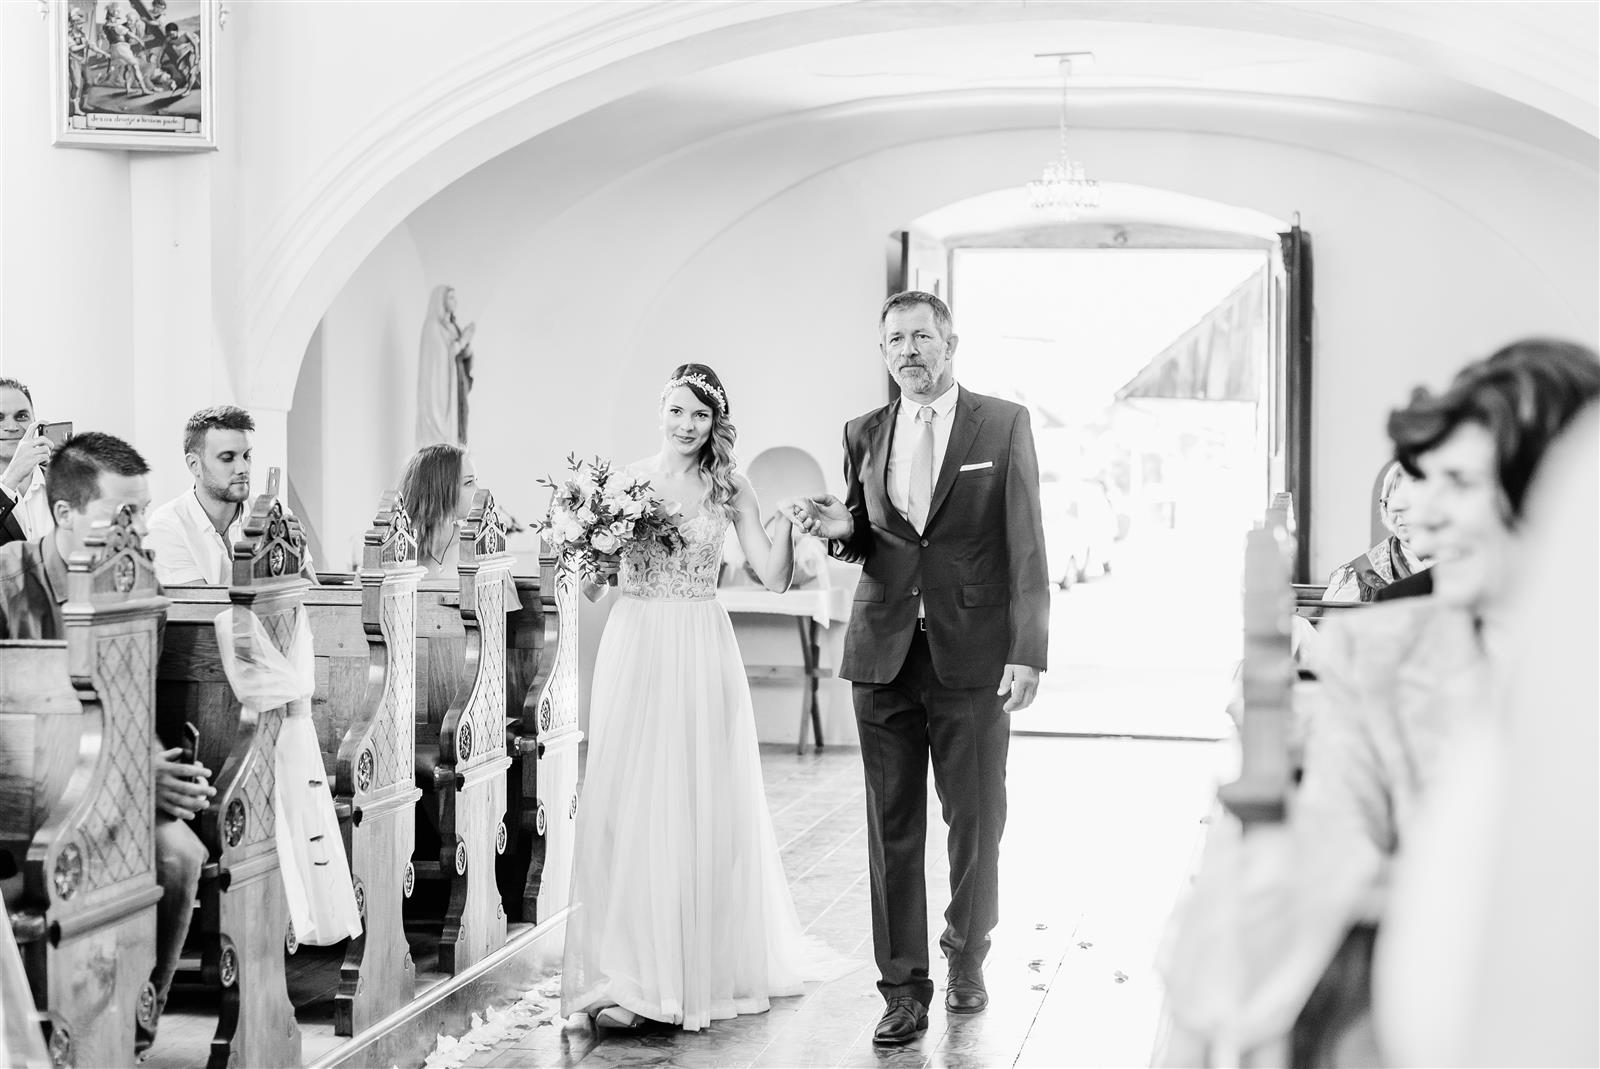 Wedding Jezersek - Wedding photographer slovenia - Neža Reisner Photography  3